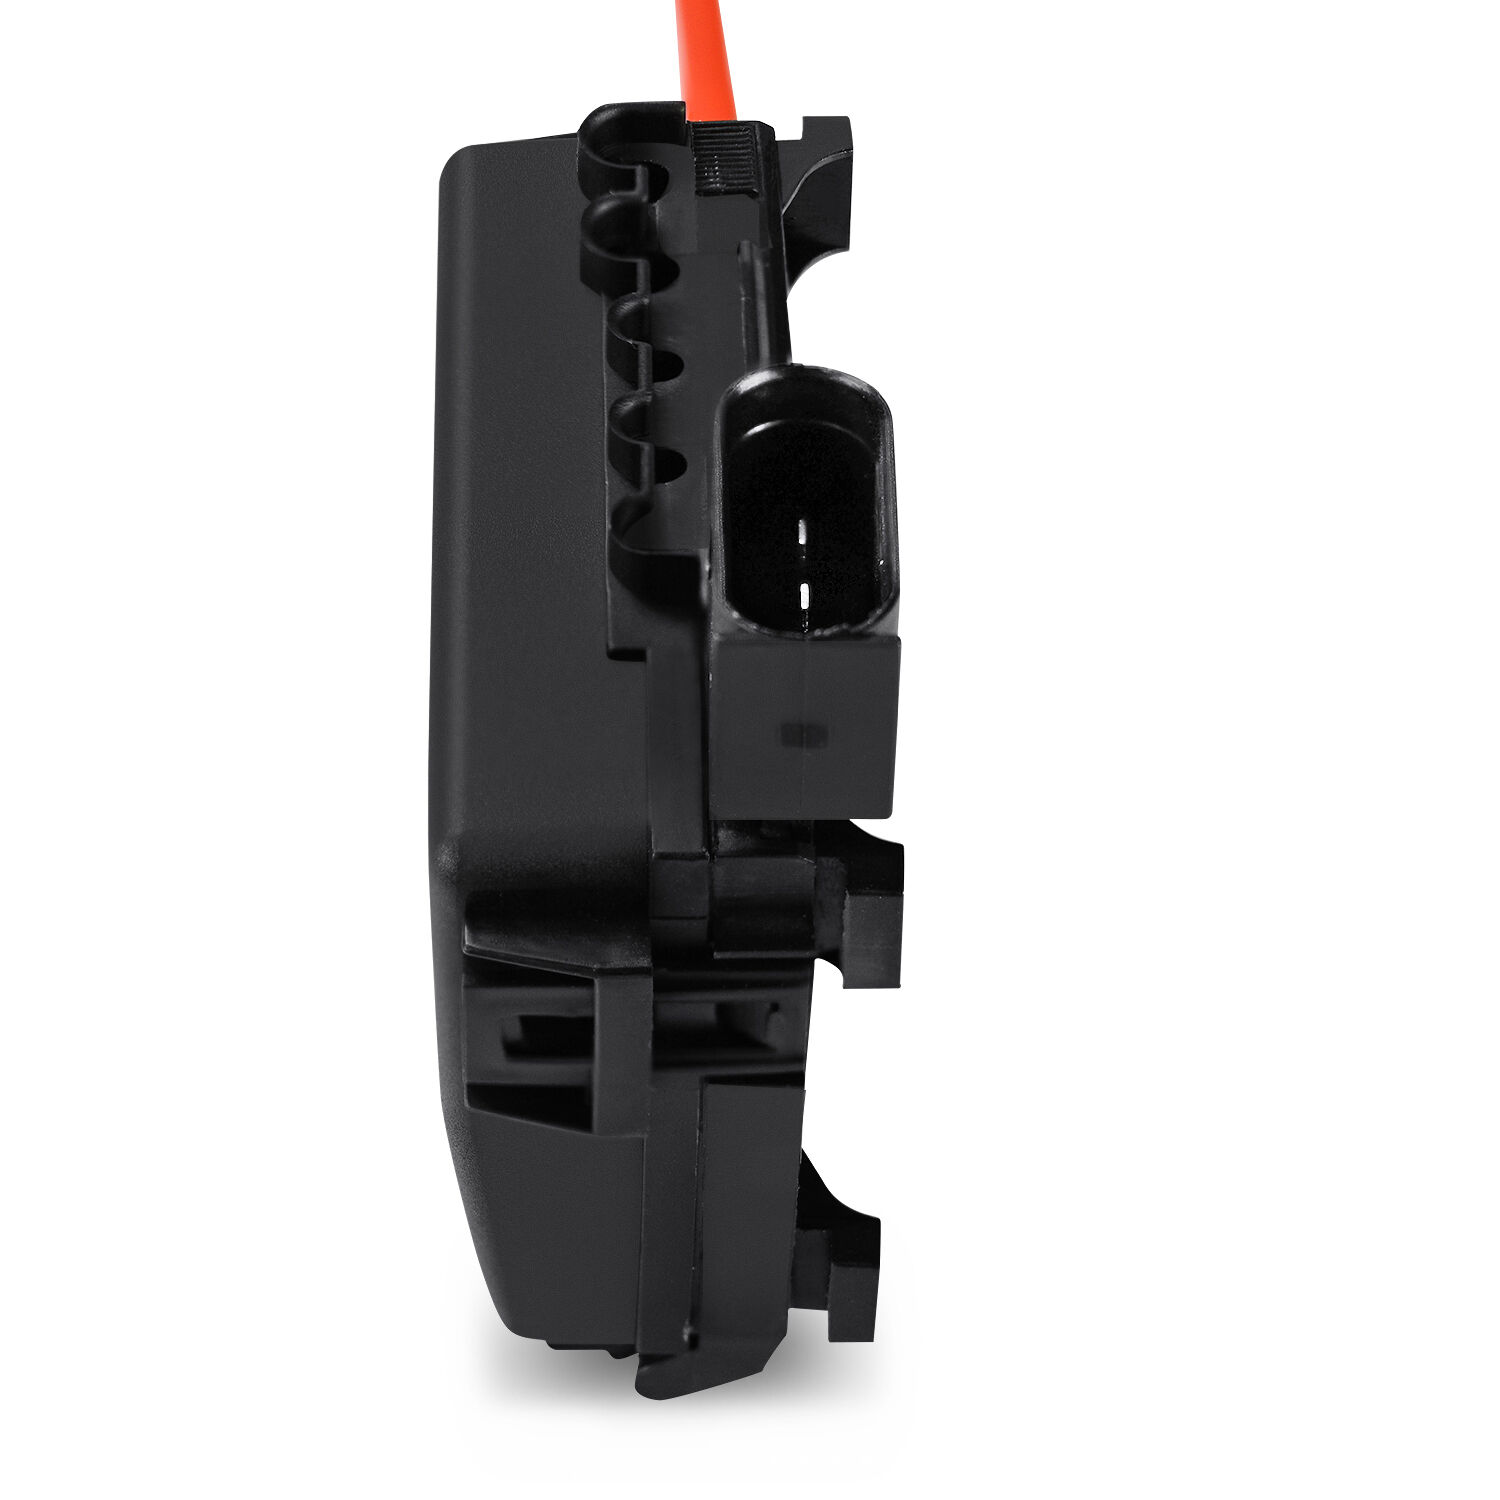 2002 Jetta Fuse Box On Battery : New fuse box battery terminal j d for vw